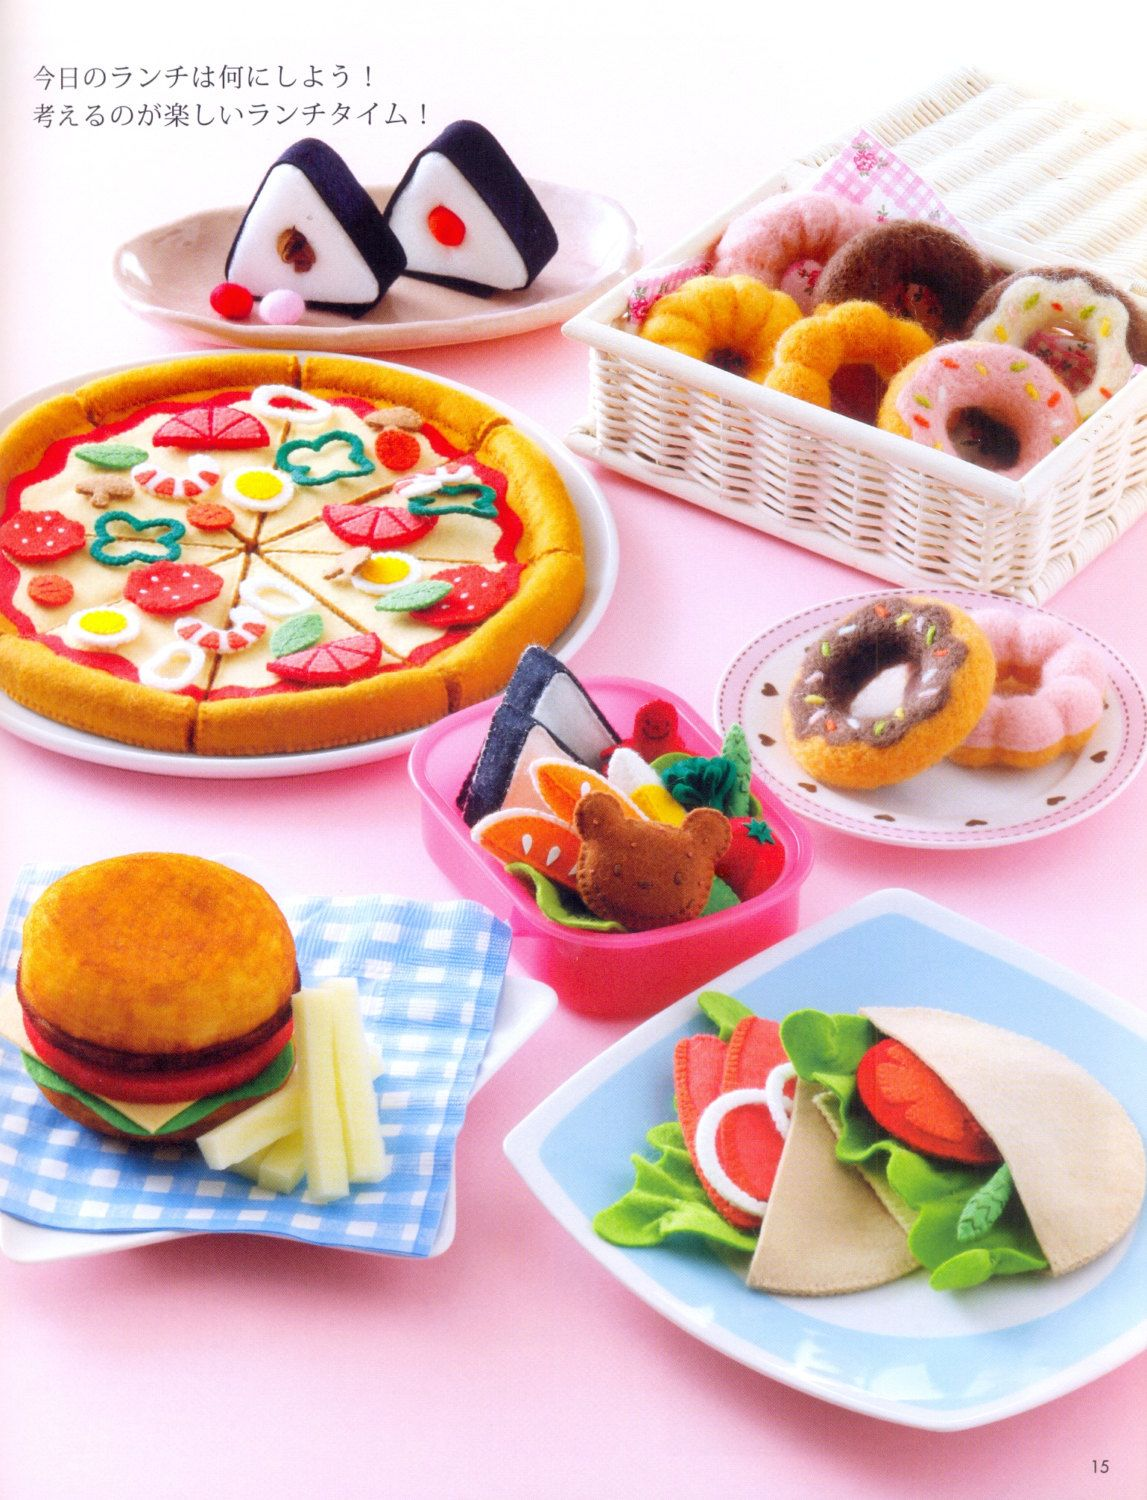 Items similar to Out-of-print Ultimate Play Food - Japanese craft book on Etsy